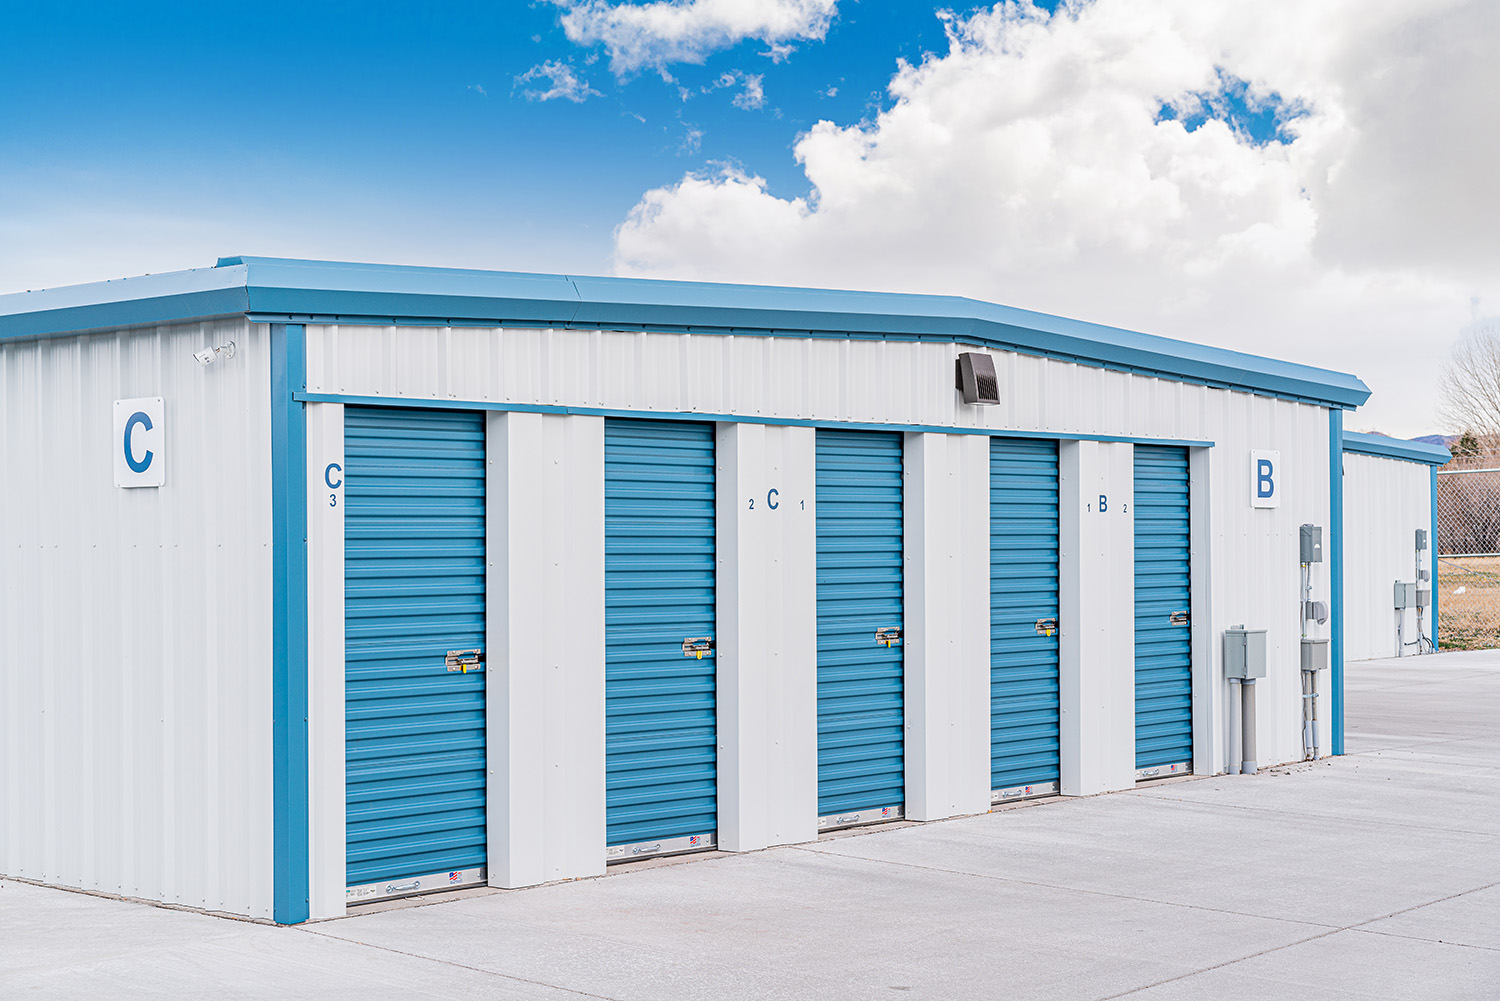 5'x10' Storage Units with 3 Foot Doors